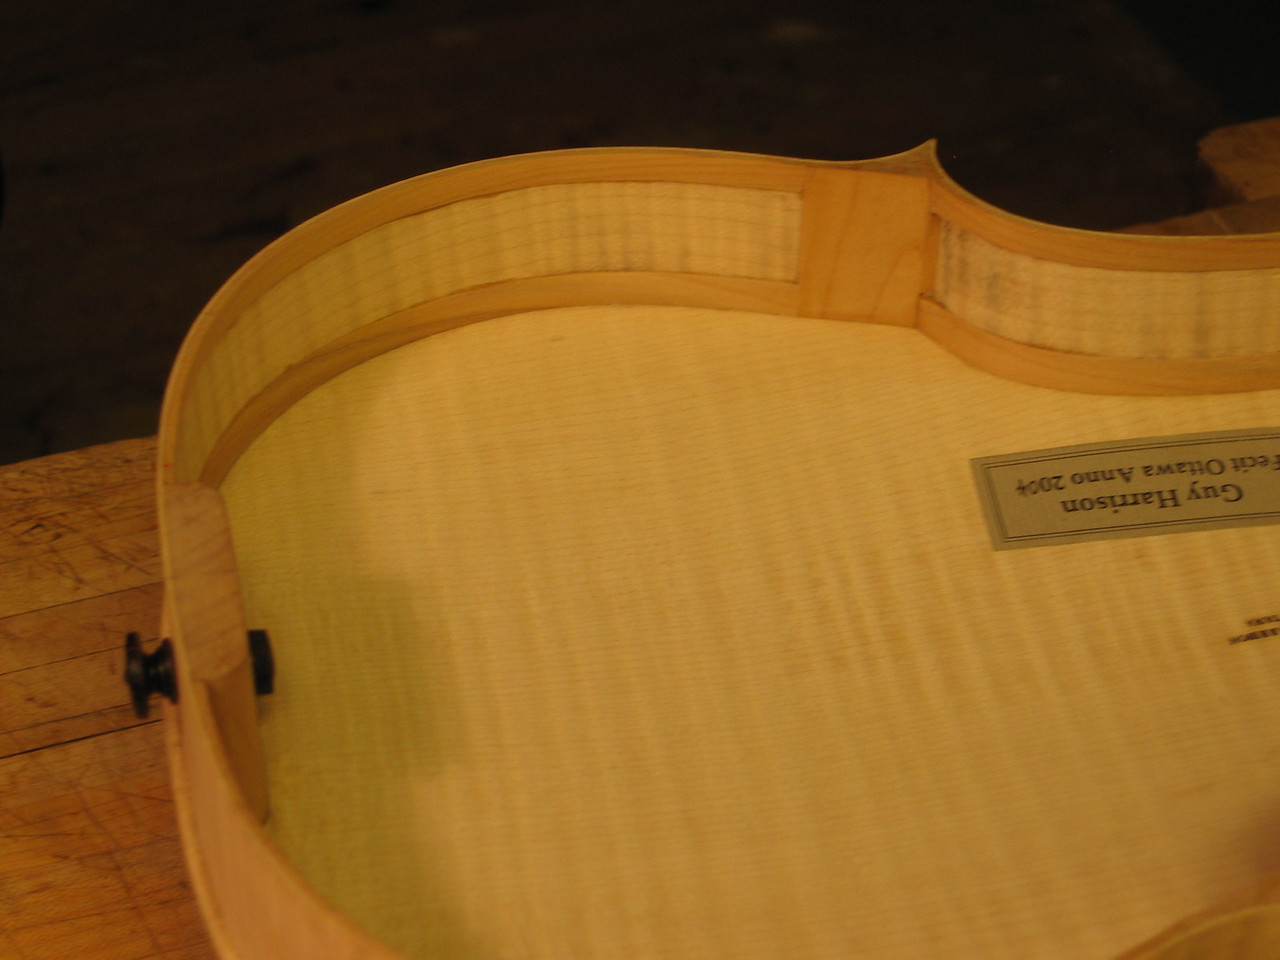 July 19 - Note the flange on the end button. This is used because in this small viola, the reinforcing block is smaller than usual to lengthen the inside of the instrument.